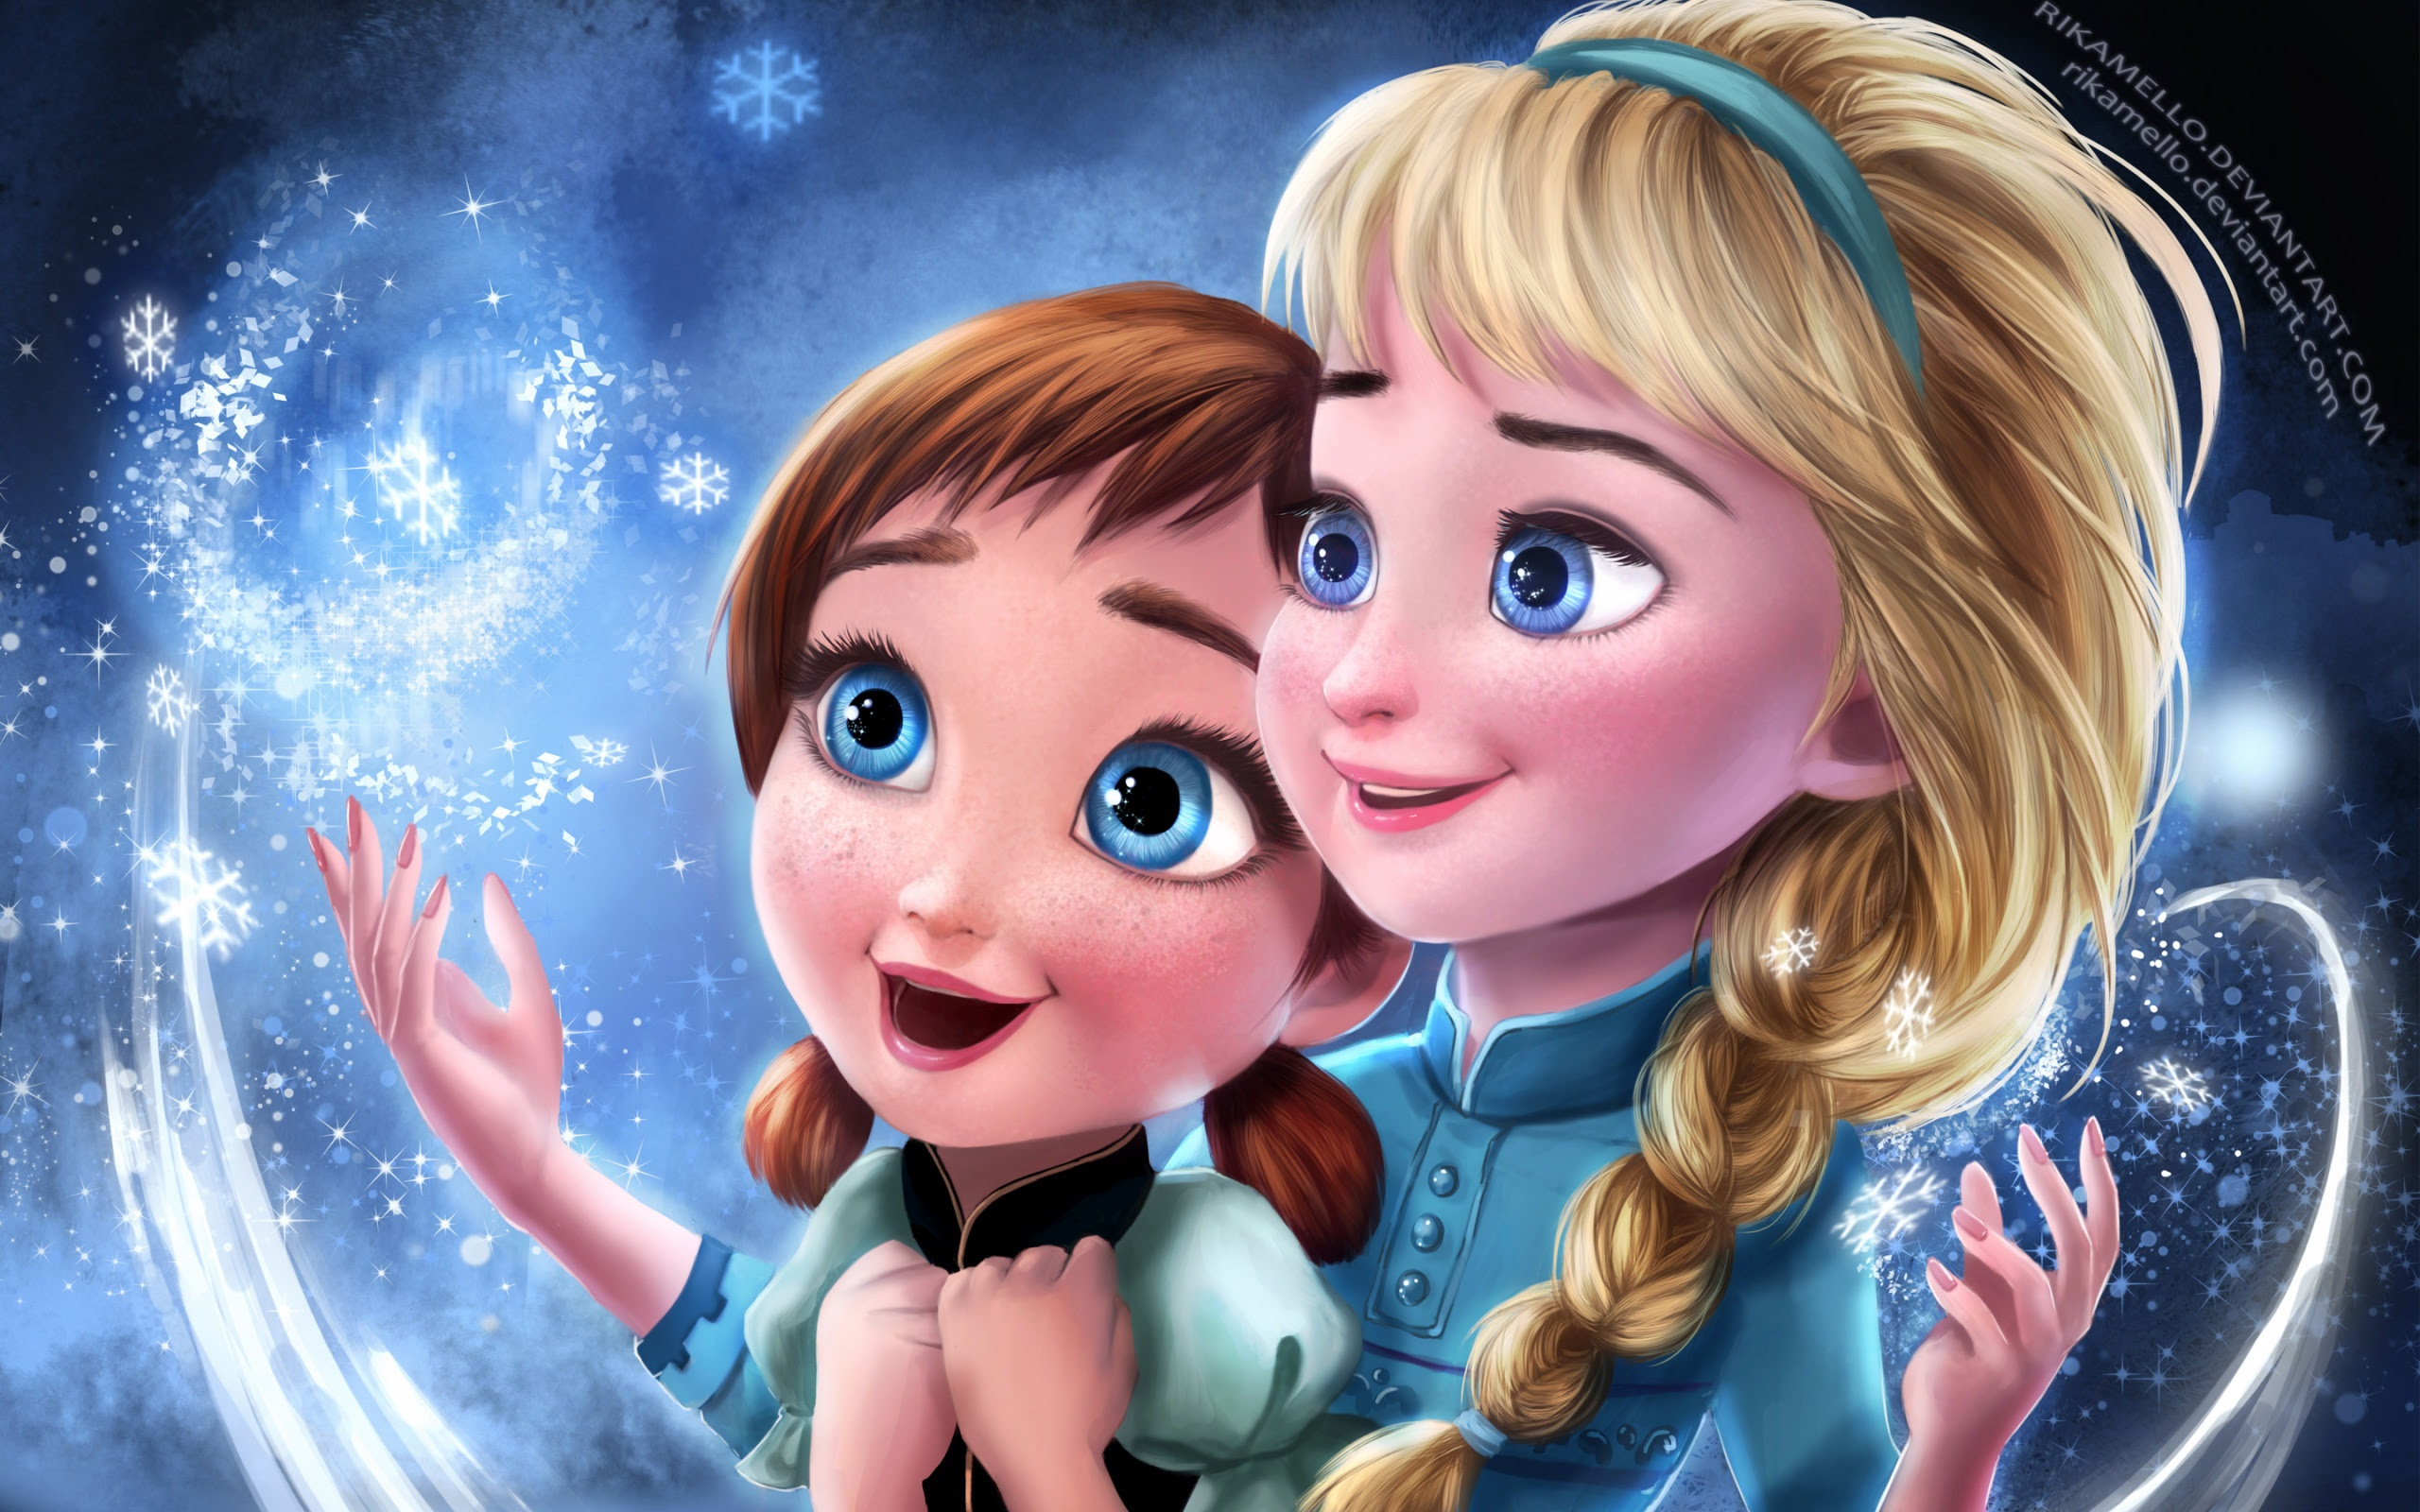 Frozen Elsa Anna Sisters Wallpapers In Jpg Format For Free Download